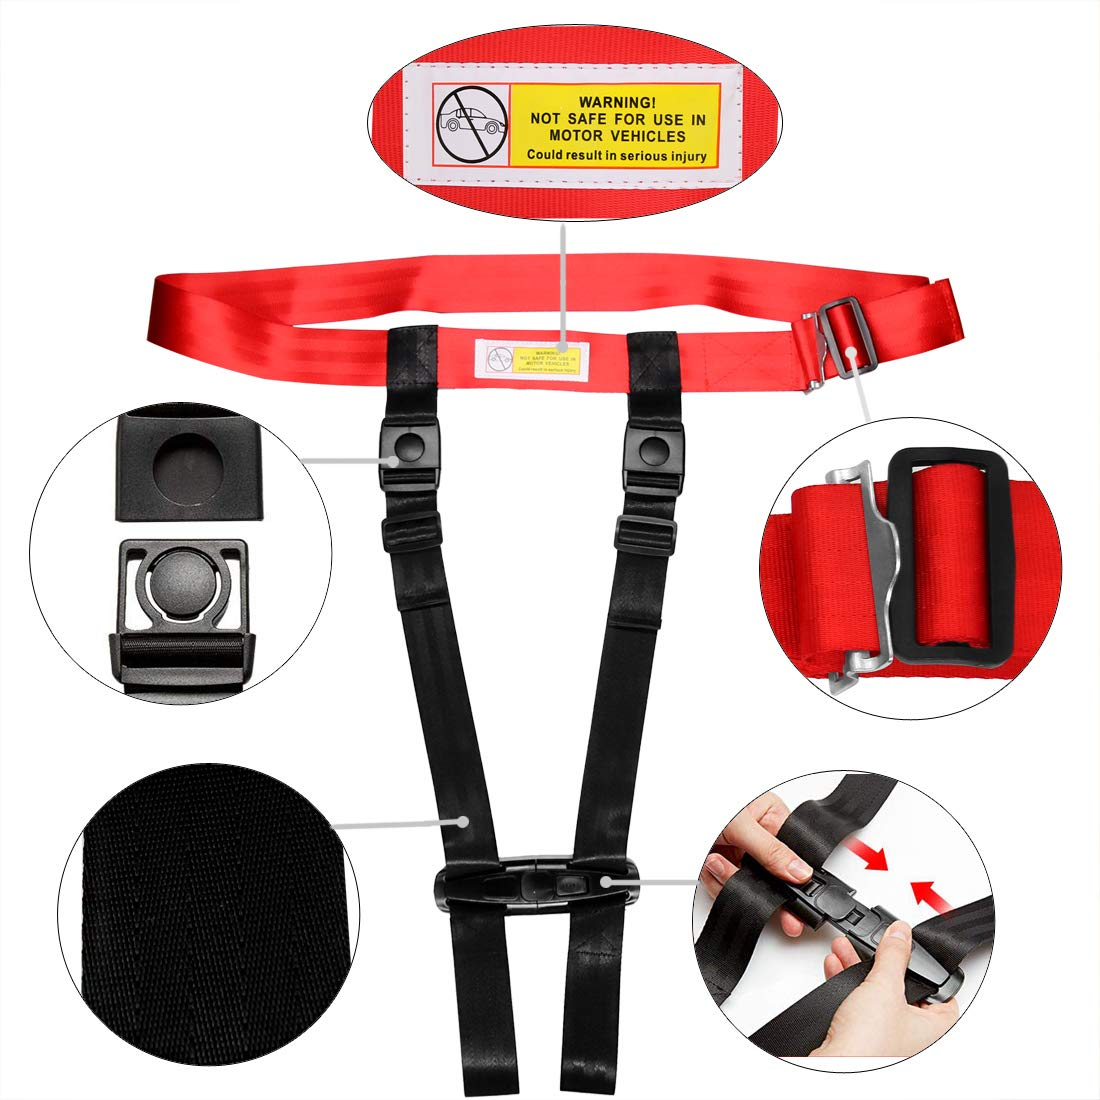 Child Airplane Travel Harness Safety Clip Strap Restraint System for Baby, Toddlers & Kids- for Airplane Travel Use Only by Together-life (Image #3)